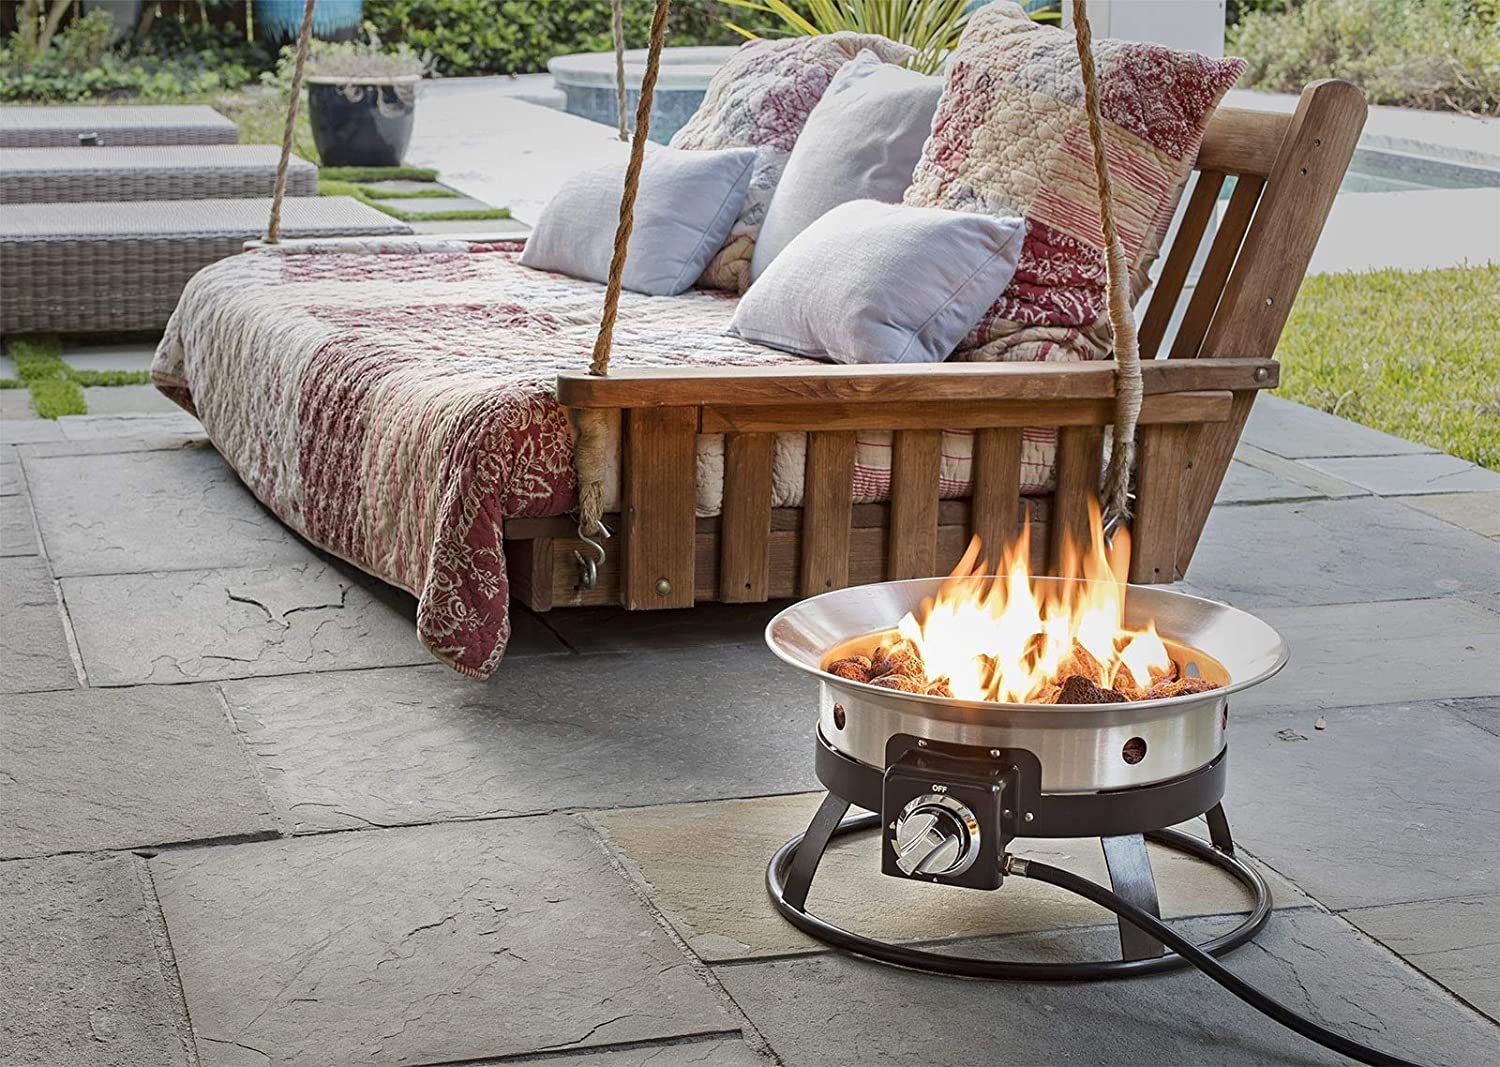 Ten Actionable Tips About Affordable Outdoor Fireplace And Fireplace.